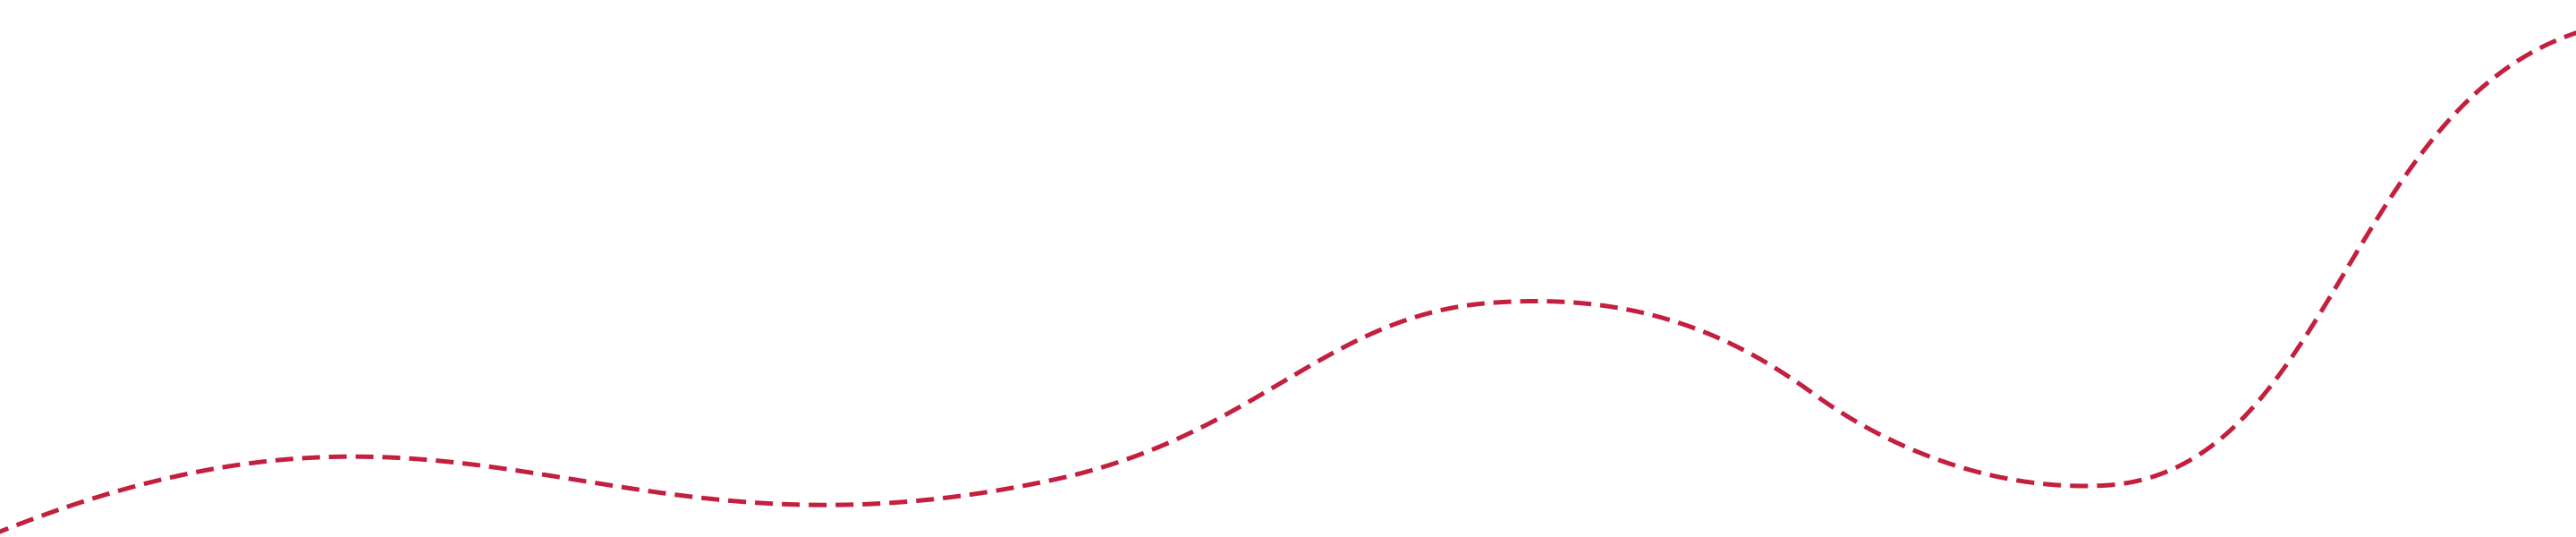 Dashed line red